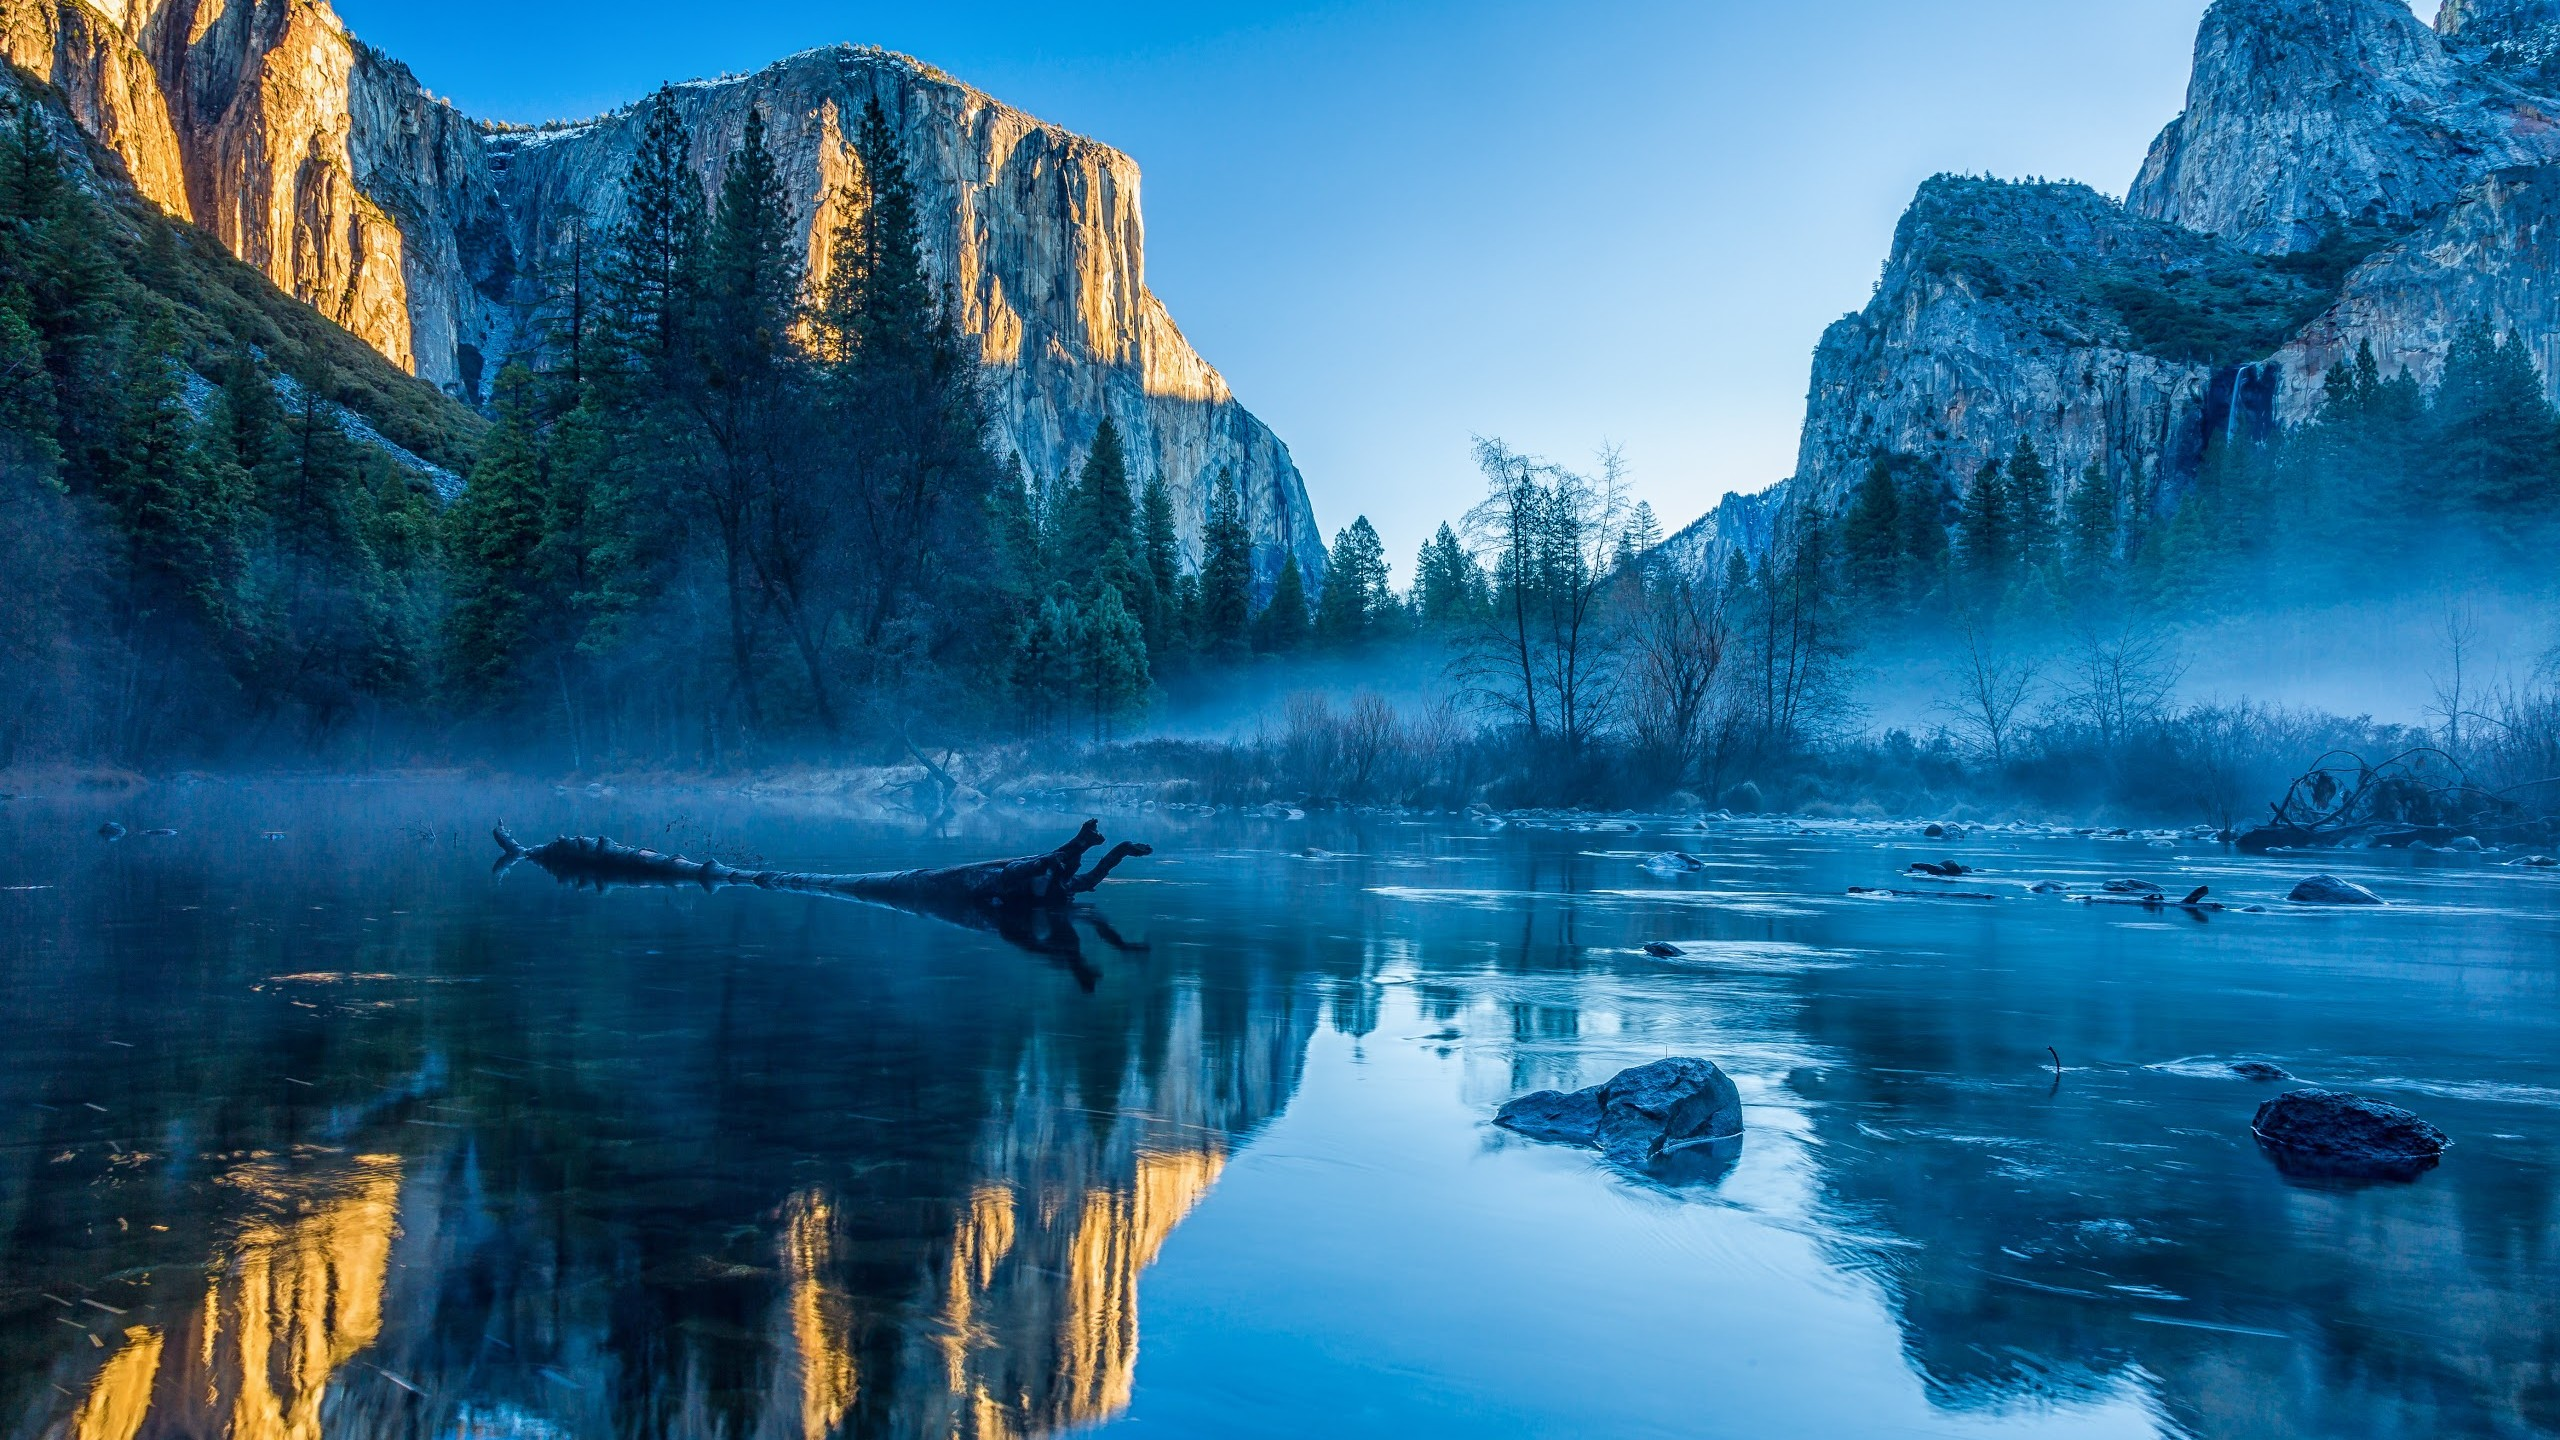 Wallpaper yosemite el capitan hd 4k wallpaper winter for Immagini apple hd